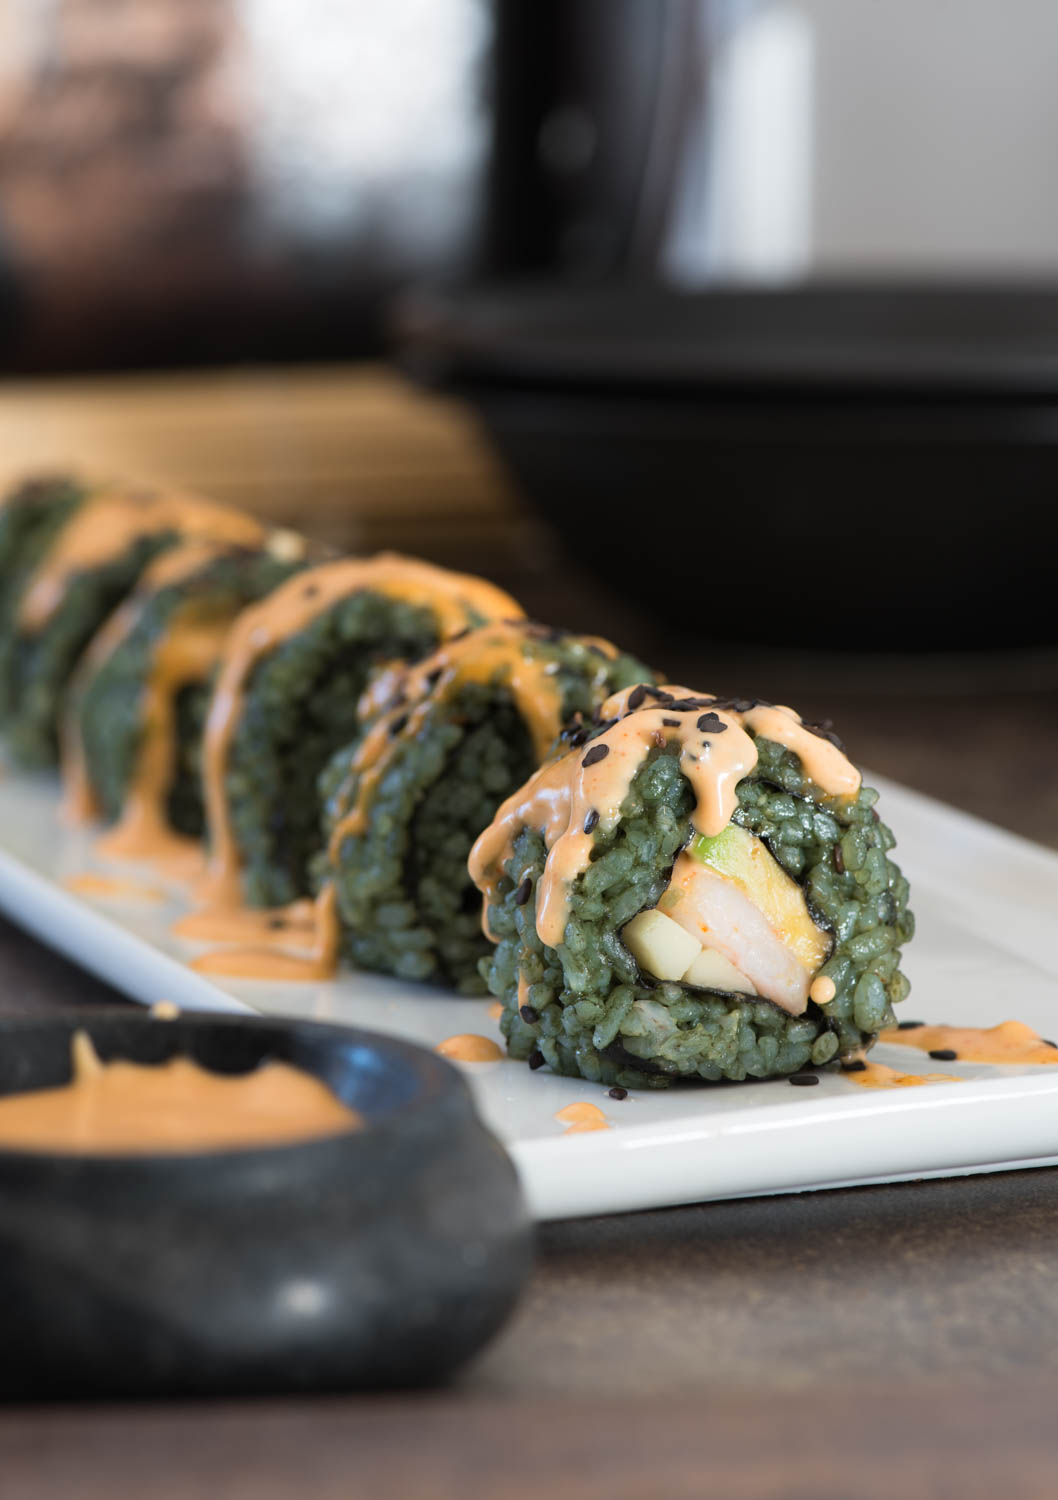 healthy sugar free sushi rolls with shrimp and avocado - naturally colored and topped with spicy mayo sauce